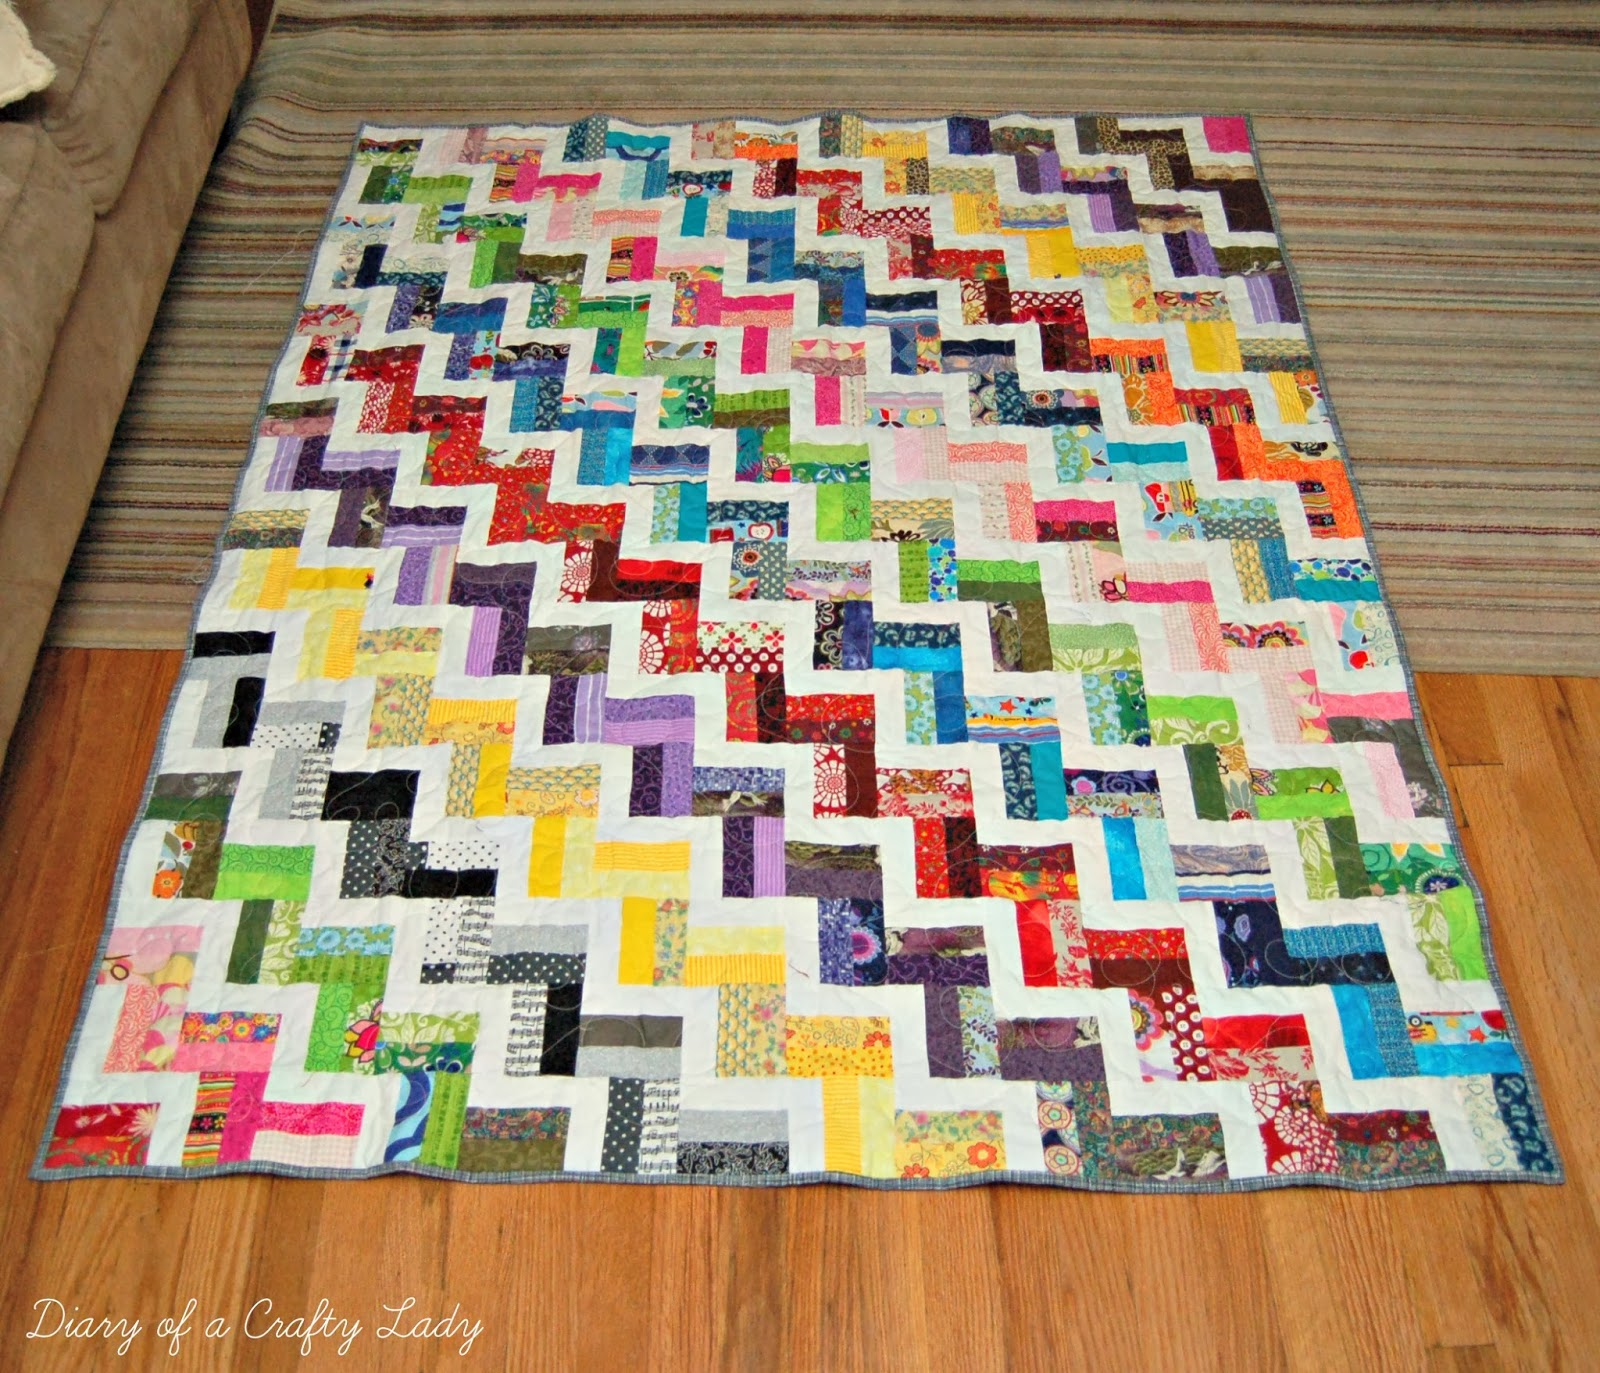 Diary of a Crafty Lady: Finished Zig Zag Scrap Quilt : zig zag quilt patterns - Adamdwight.com